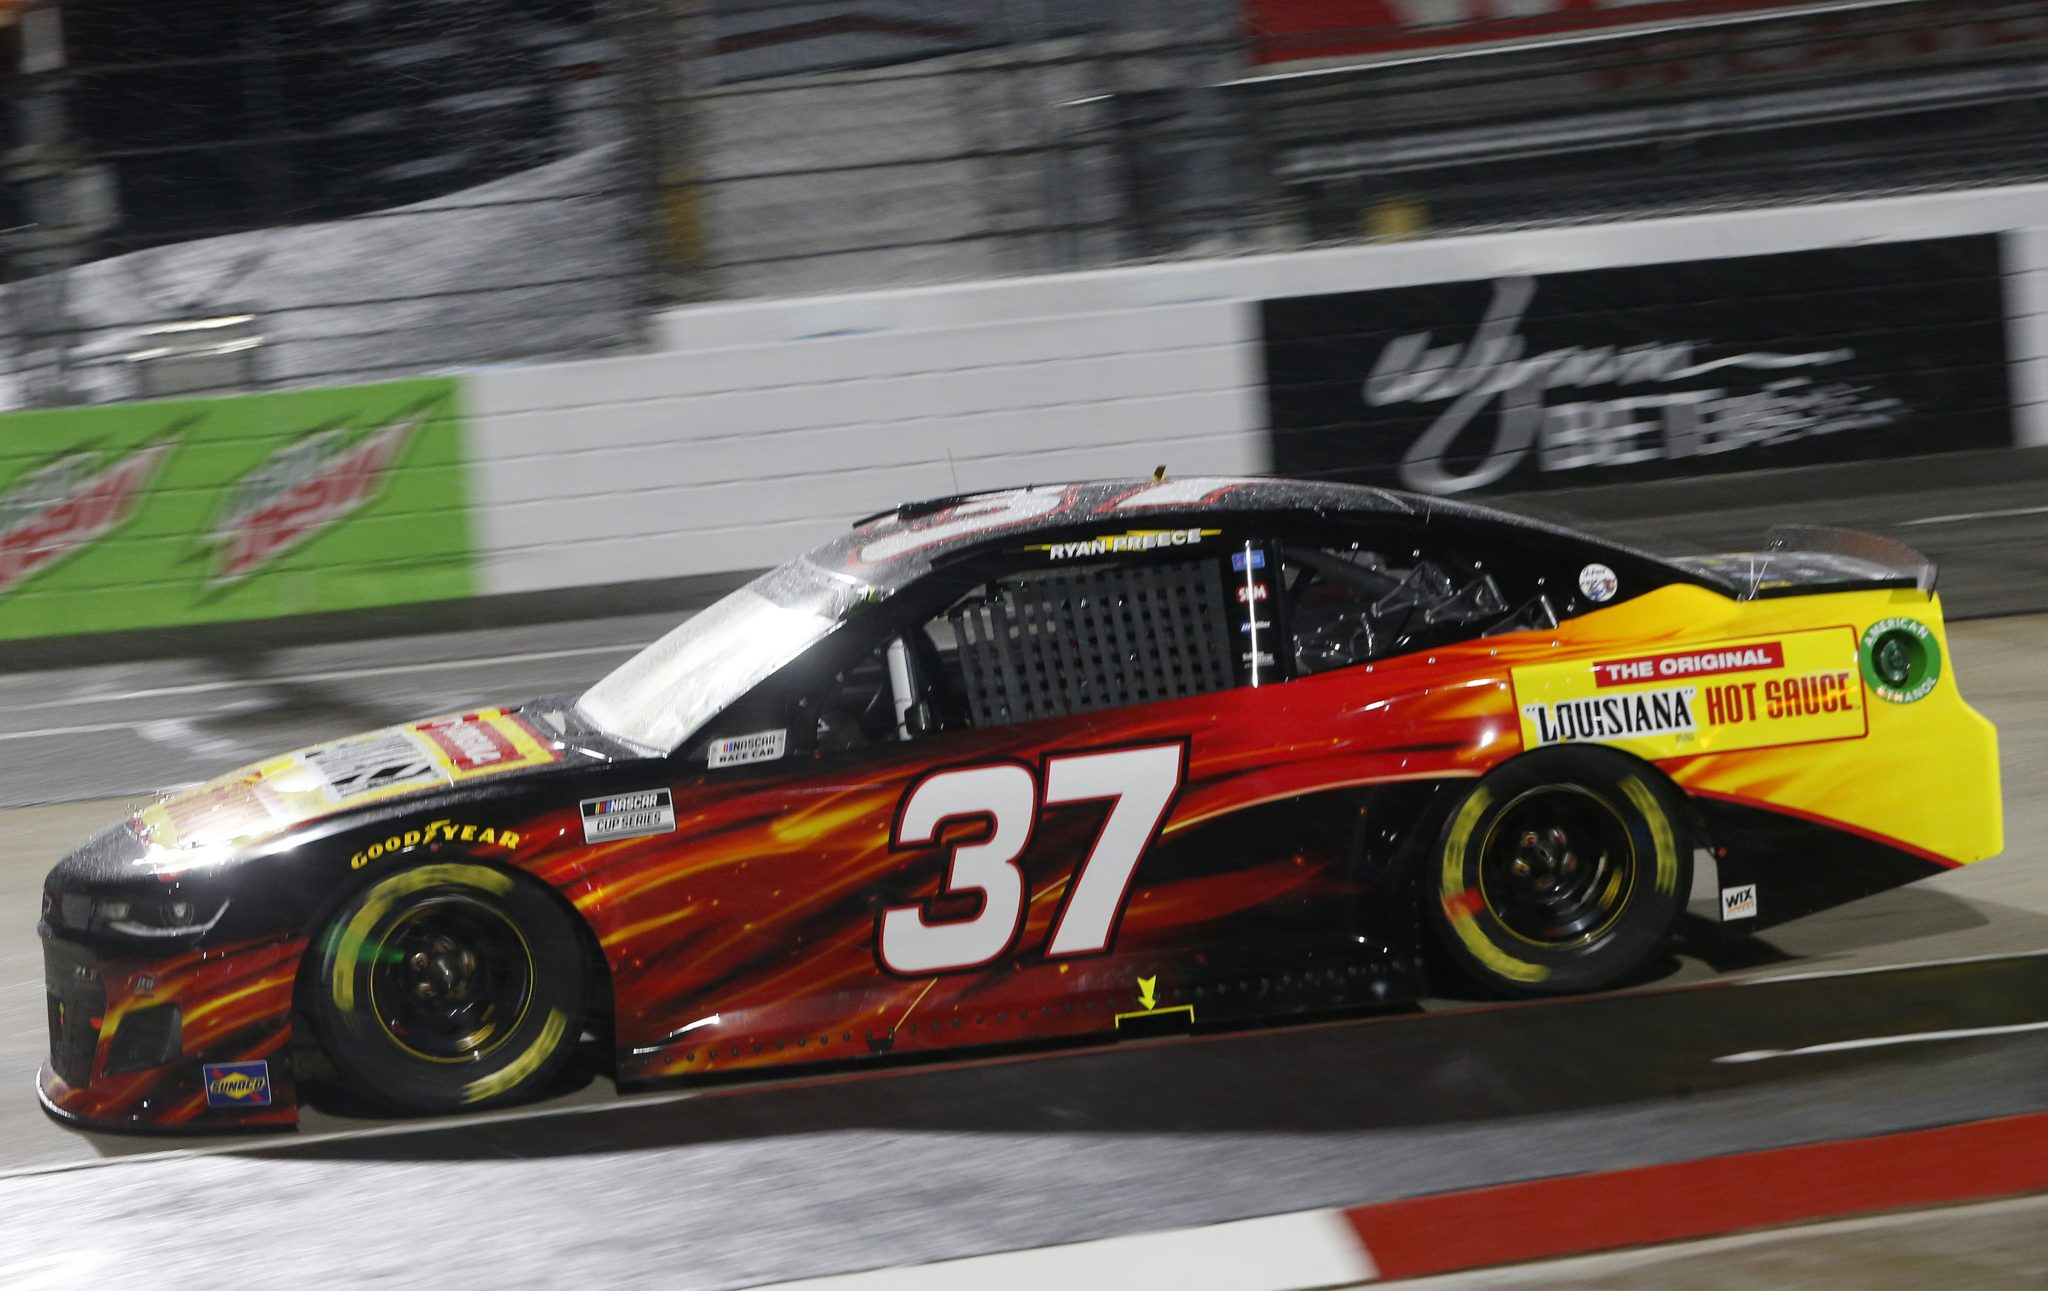 MARTINSVILLE, VIRGINIA - APRIL 10: Ryan Preece, driver of the #37 Louisiana Hot Sauce Chevrolet, drives during the NASCAR Cup Series Blue-Emu Maximum Pain Relief 500 at Martinsville Speedway on April 10, 2021 in Martinsville, Virginia. (Photo by Brian Lawdermilk/Getty Images)   Getty Images